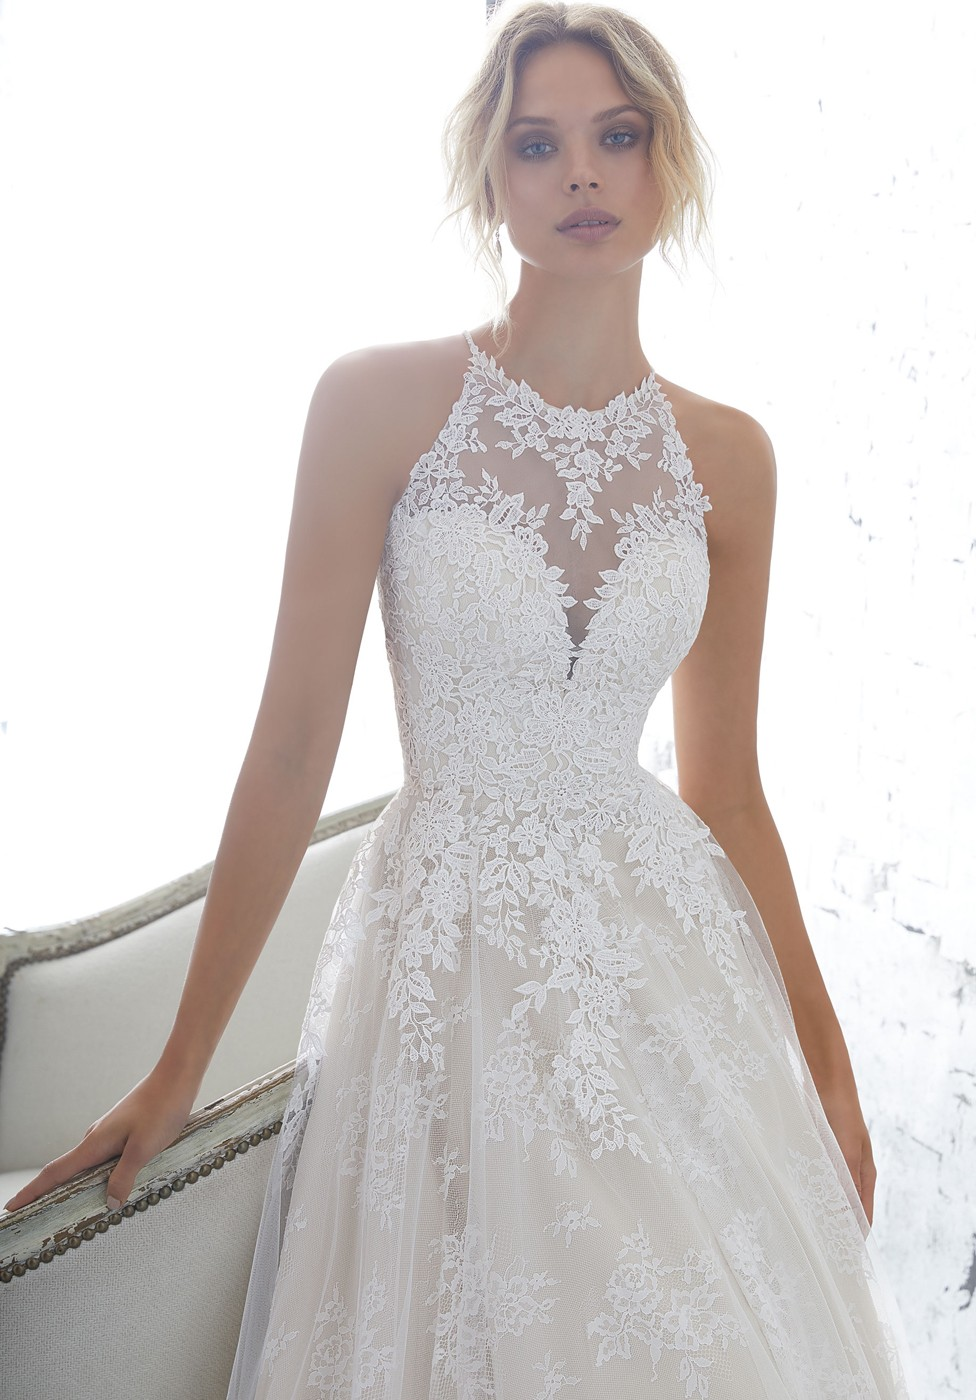 Mori Lee Angelina Faccenda 1702 Kayleigh Dress - MadameBridal.com